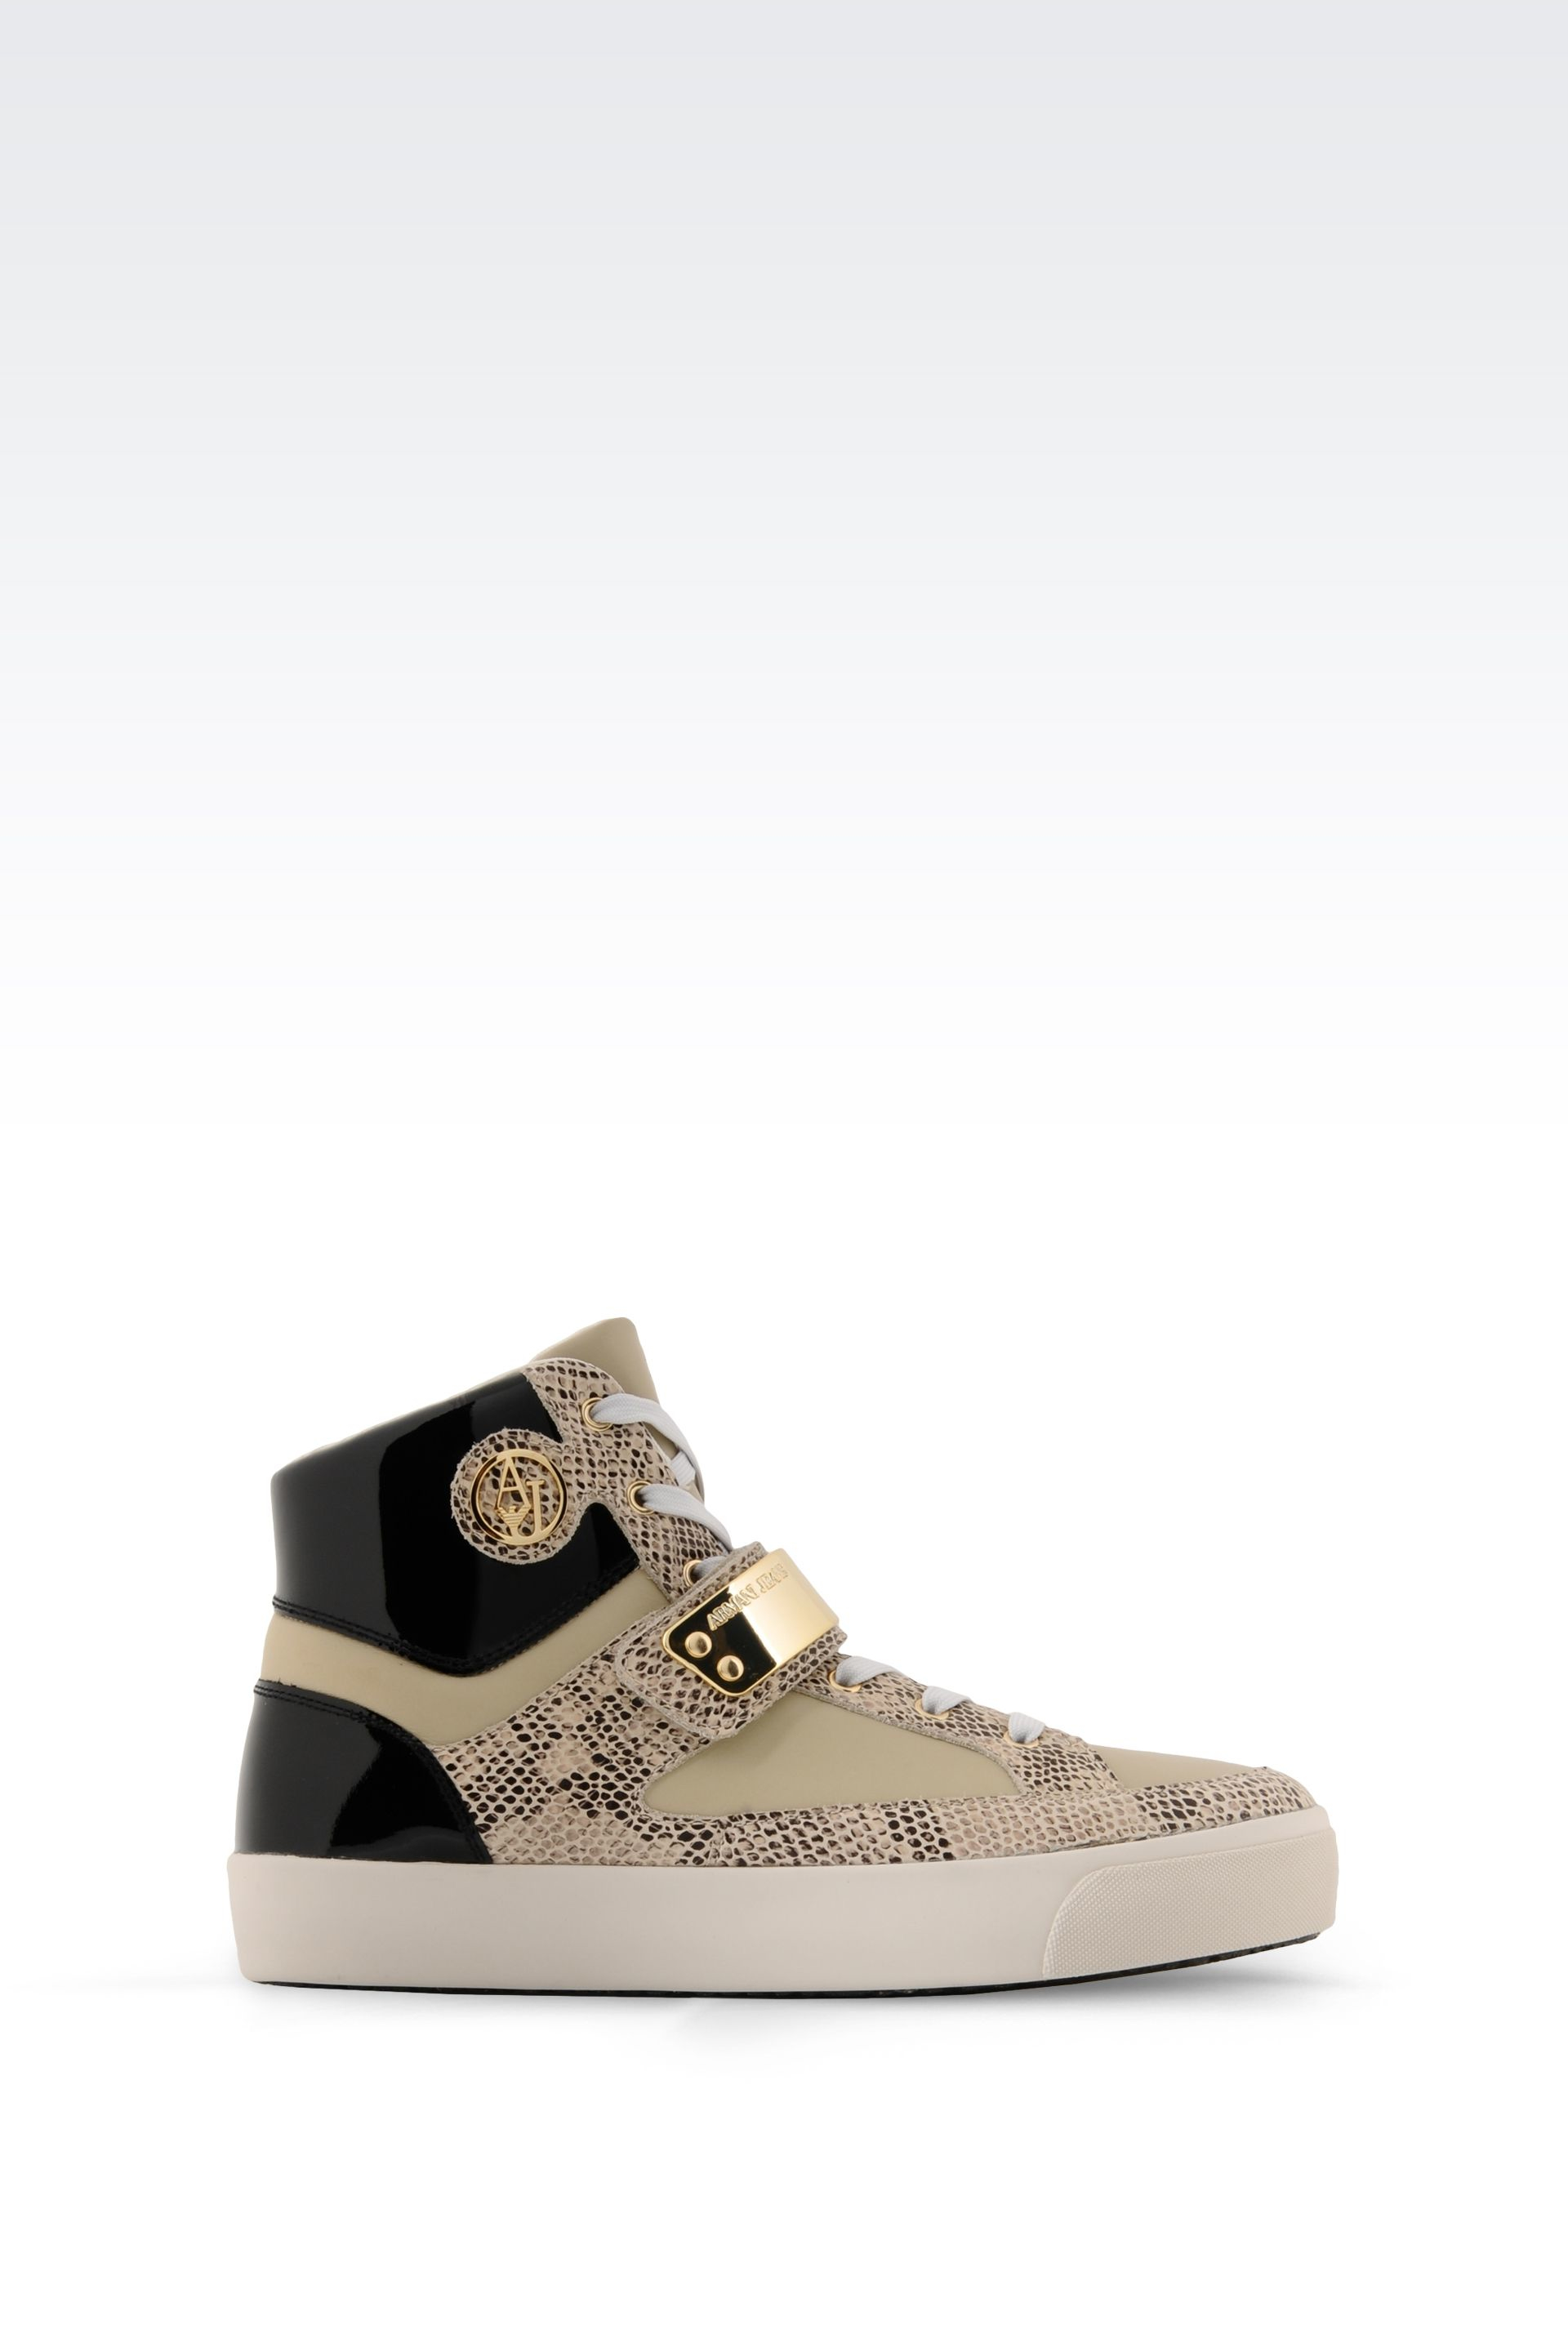 armani jeans high top sneaker in leather in gold beige. Black Bedroom Furniture Sets. Home Design Ideas